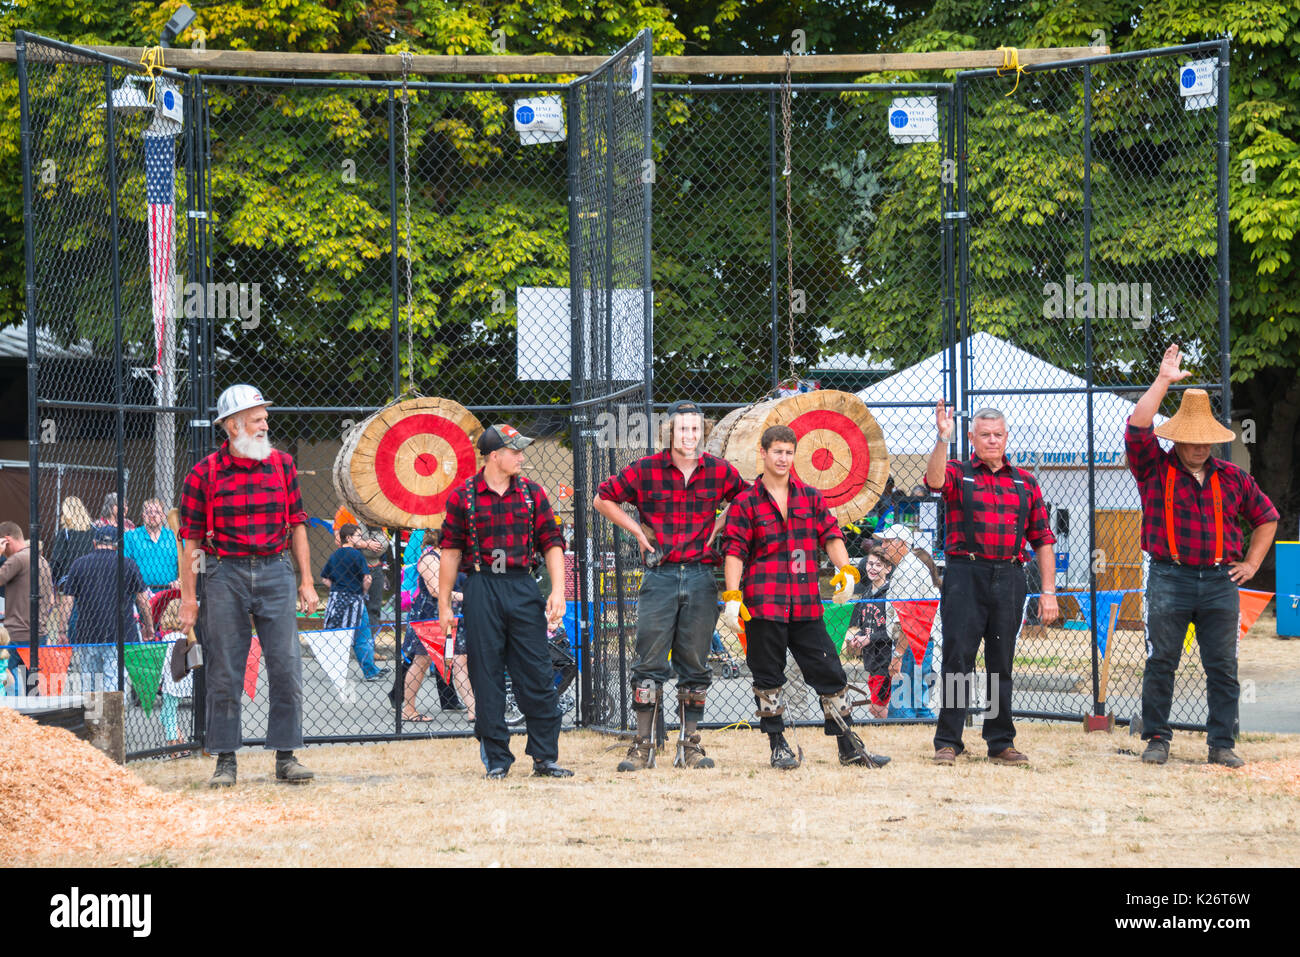 Timber Cutters Lumberjack Skills Demonstration Evergreen State Fair Monroe Washington - Stock Image